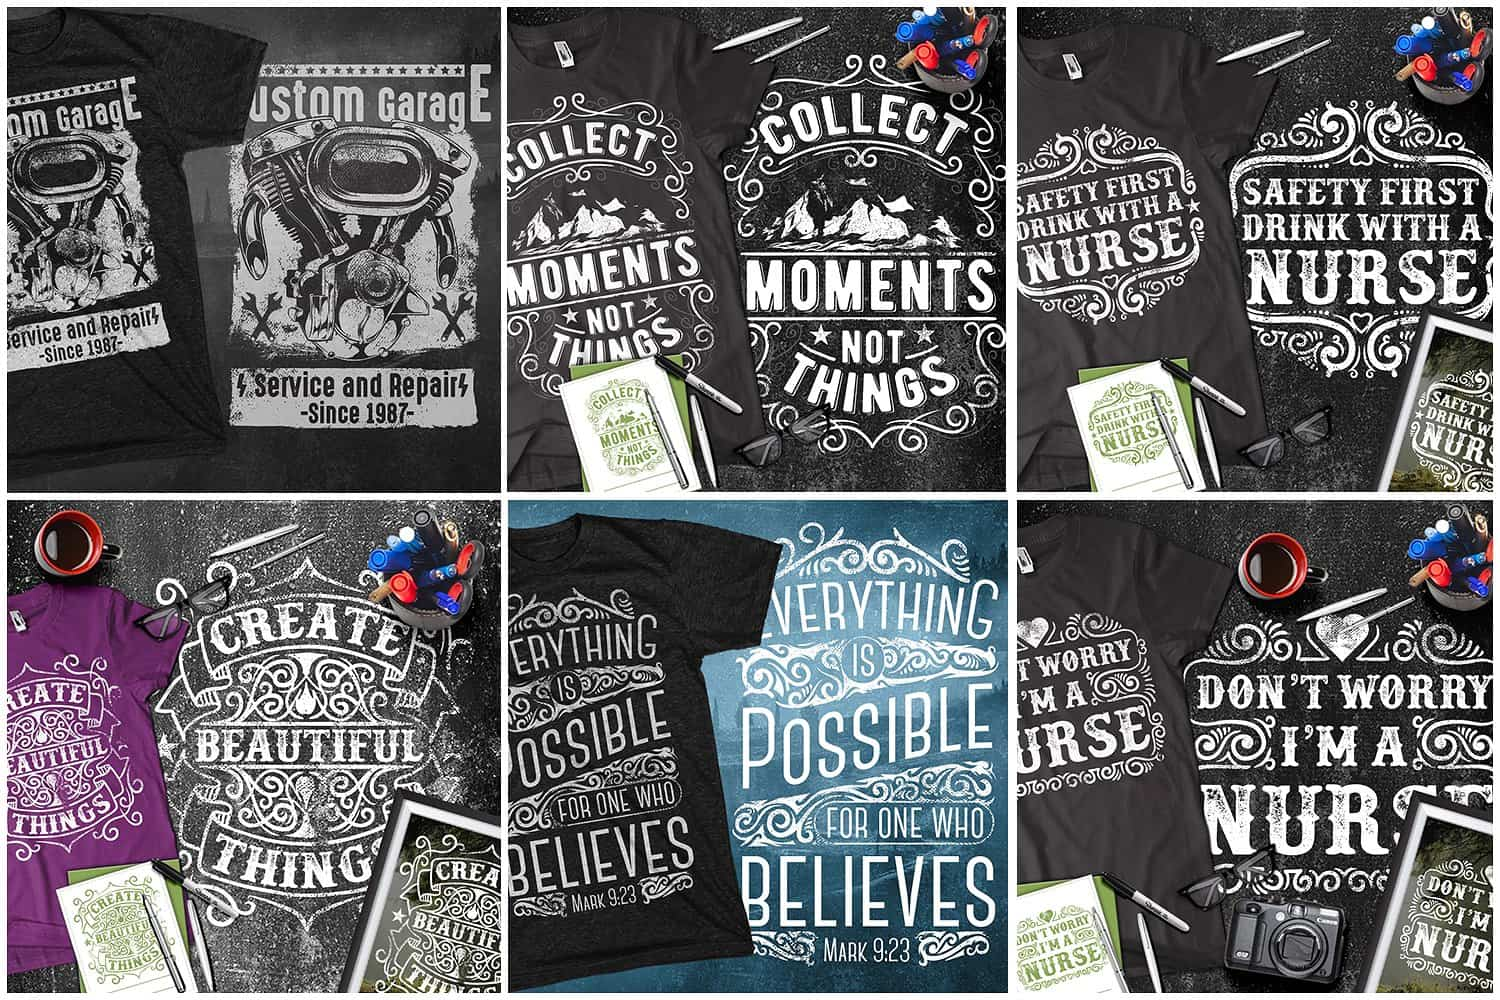 Many beautiful t-shirts with funny letterings.